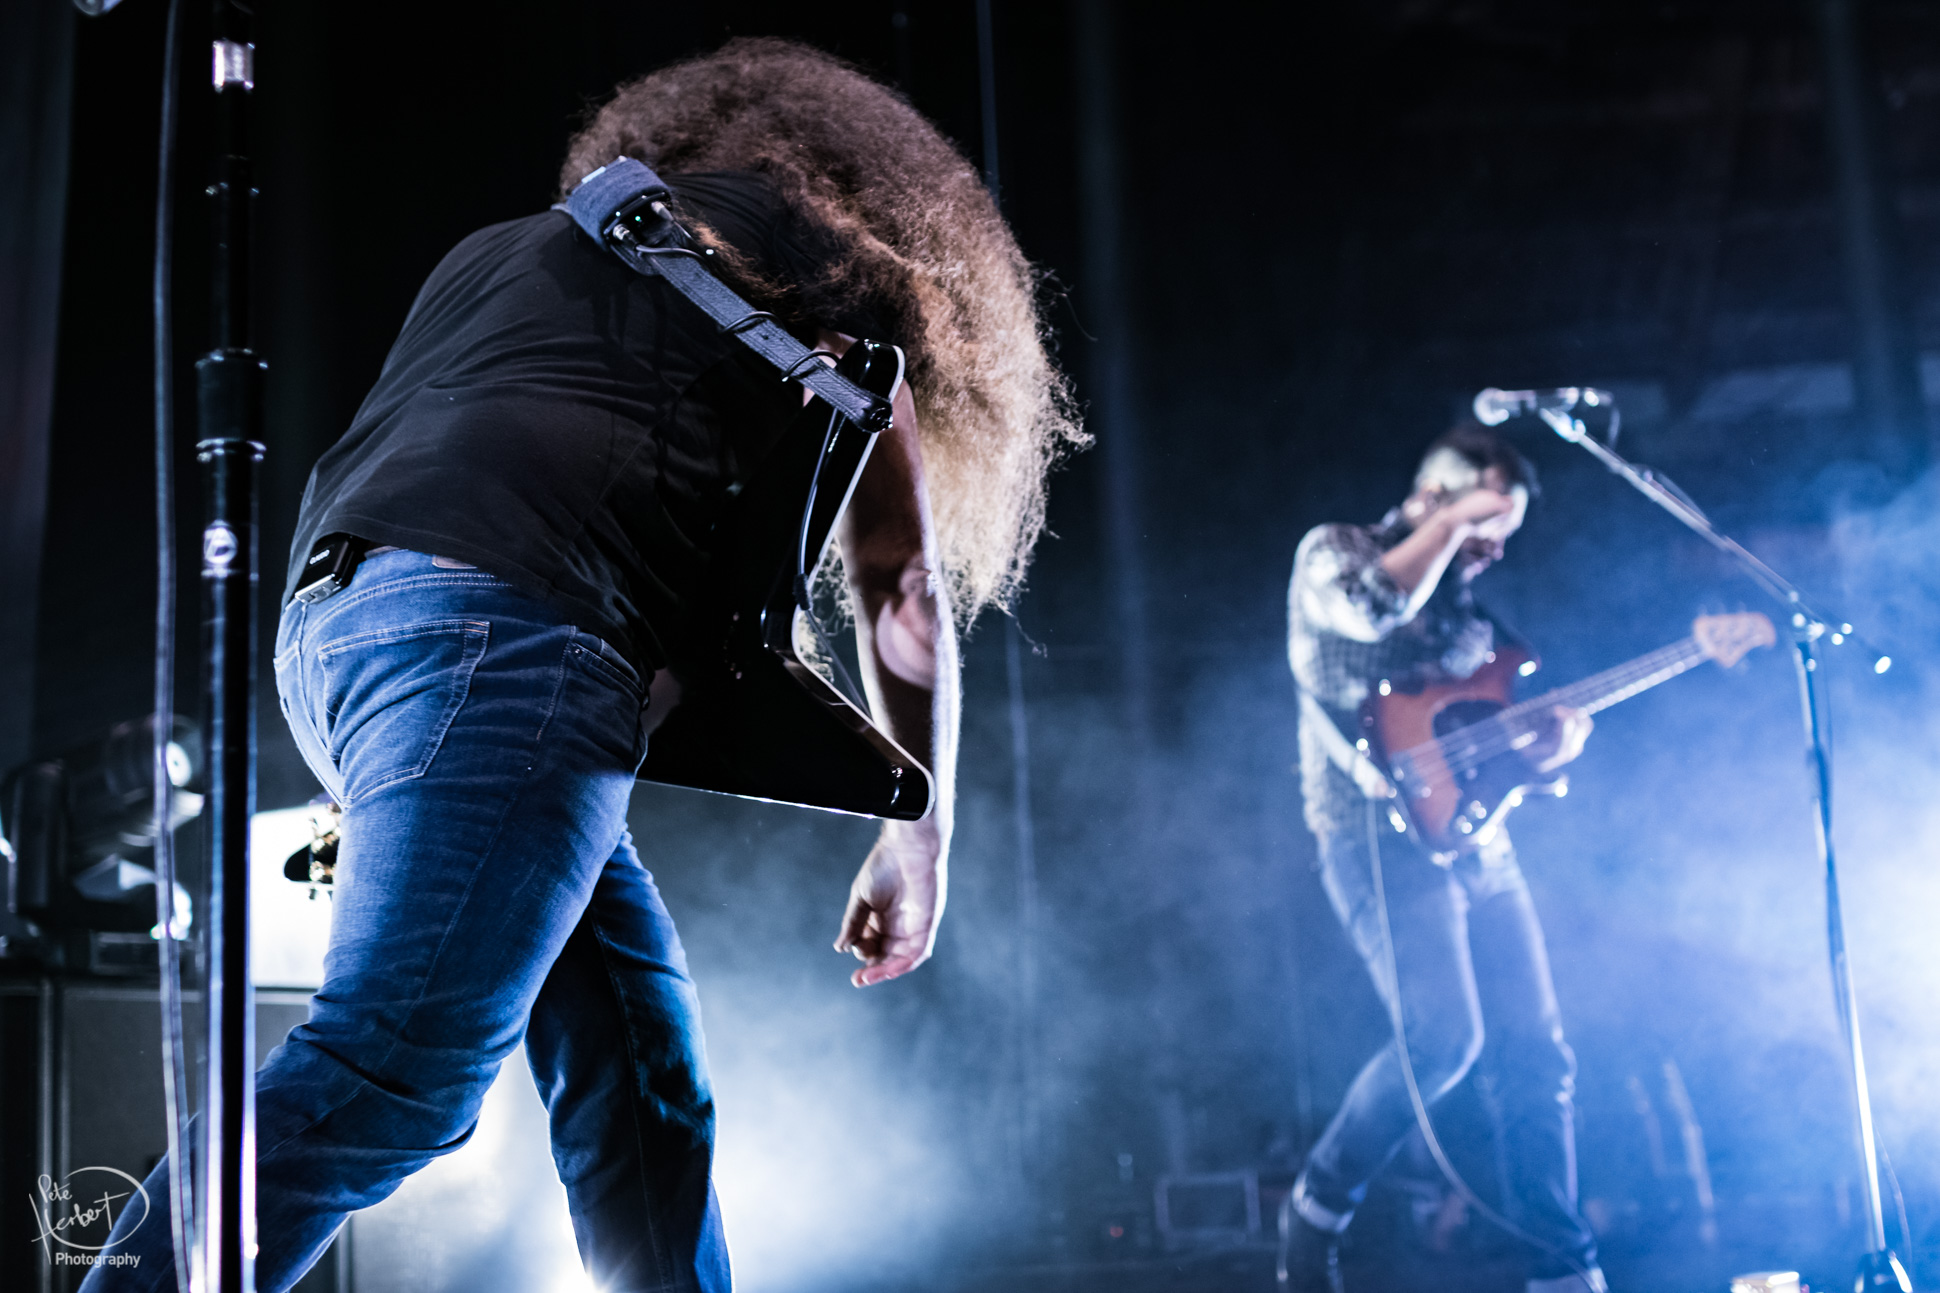 Coheed & Cambria - The Roundhouse - 16.10.18 - London-23.JPG